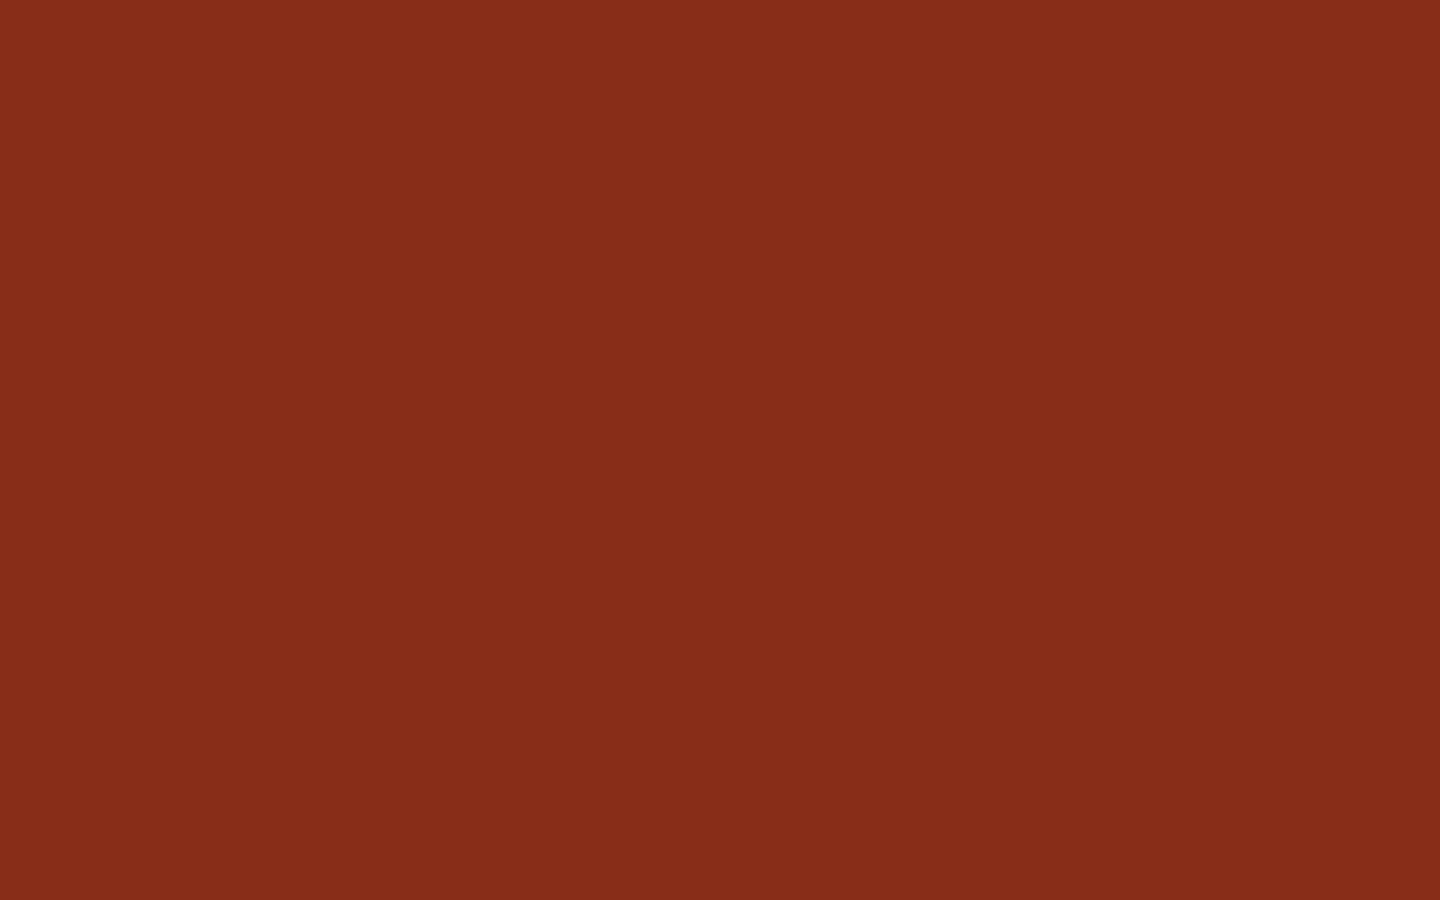 1440x900 Sienna Solid Color Background